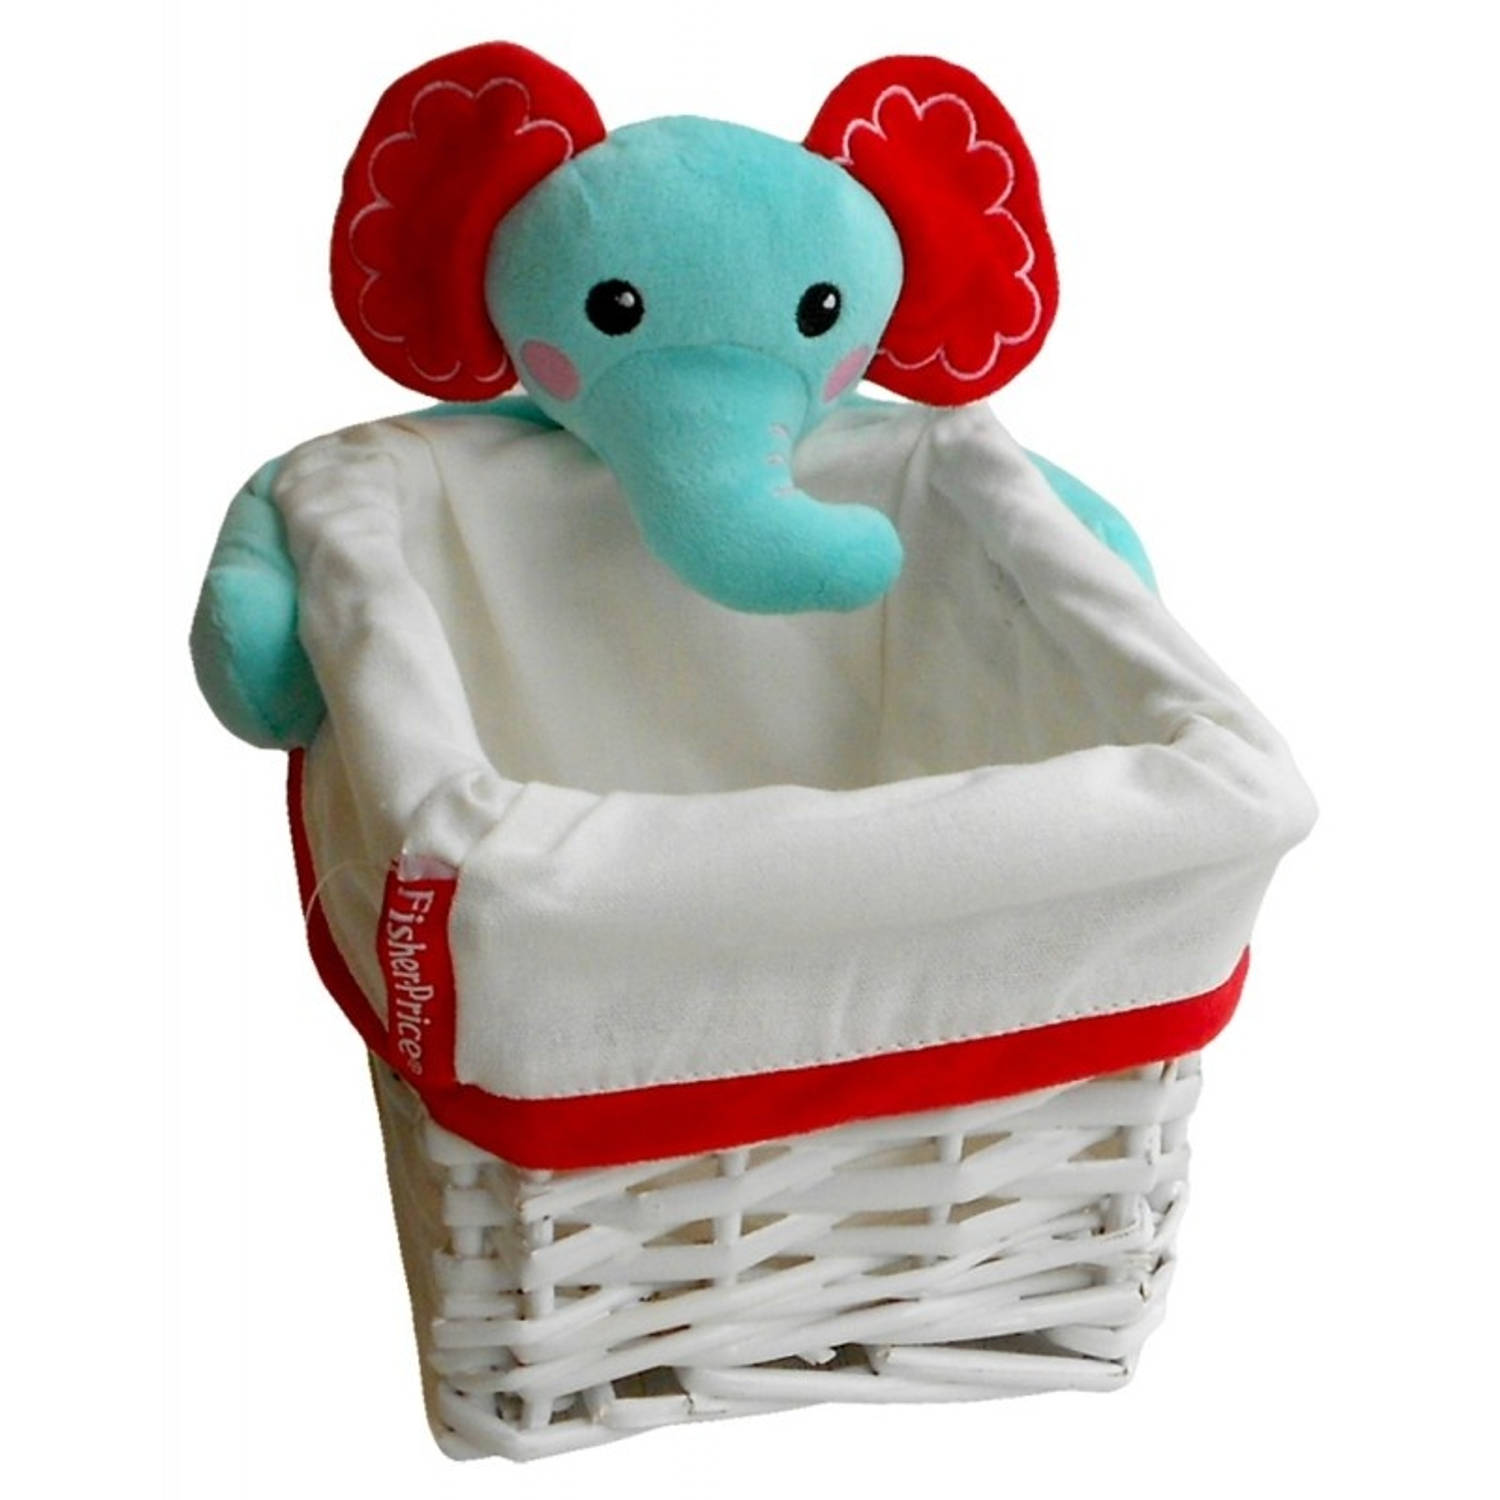 Fisher-Price opbergbox olifant 9,86 liter wit/blauw